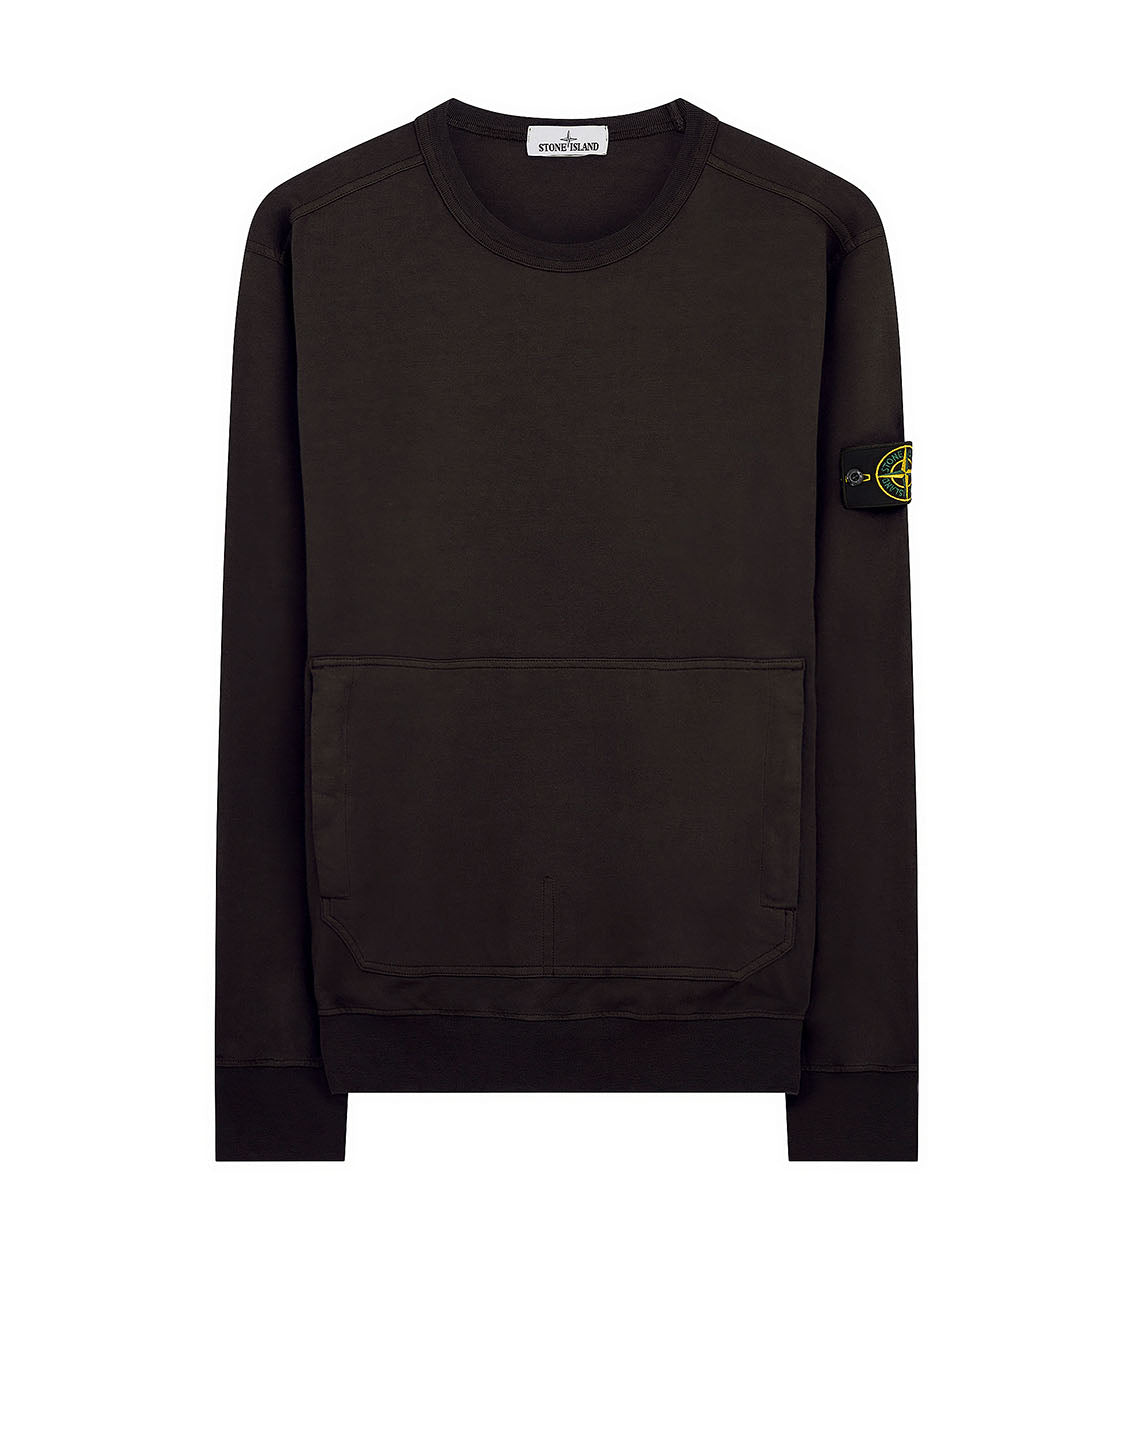 60750 Sweatshirt in Black